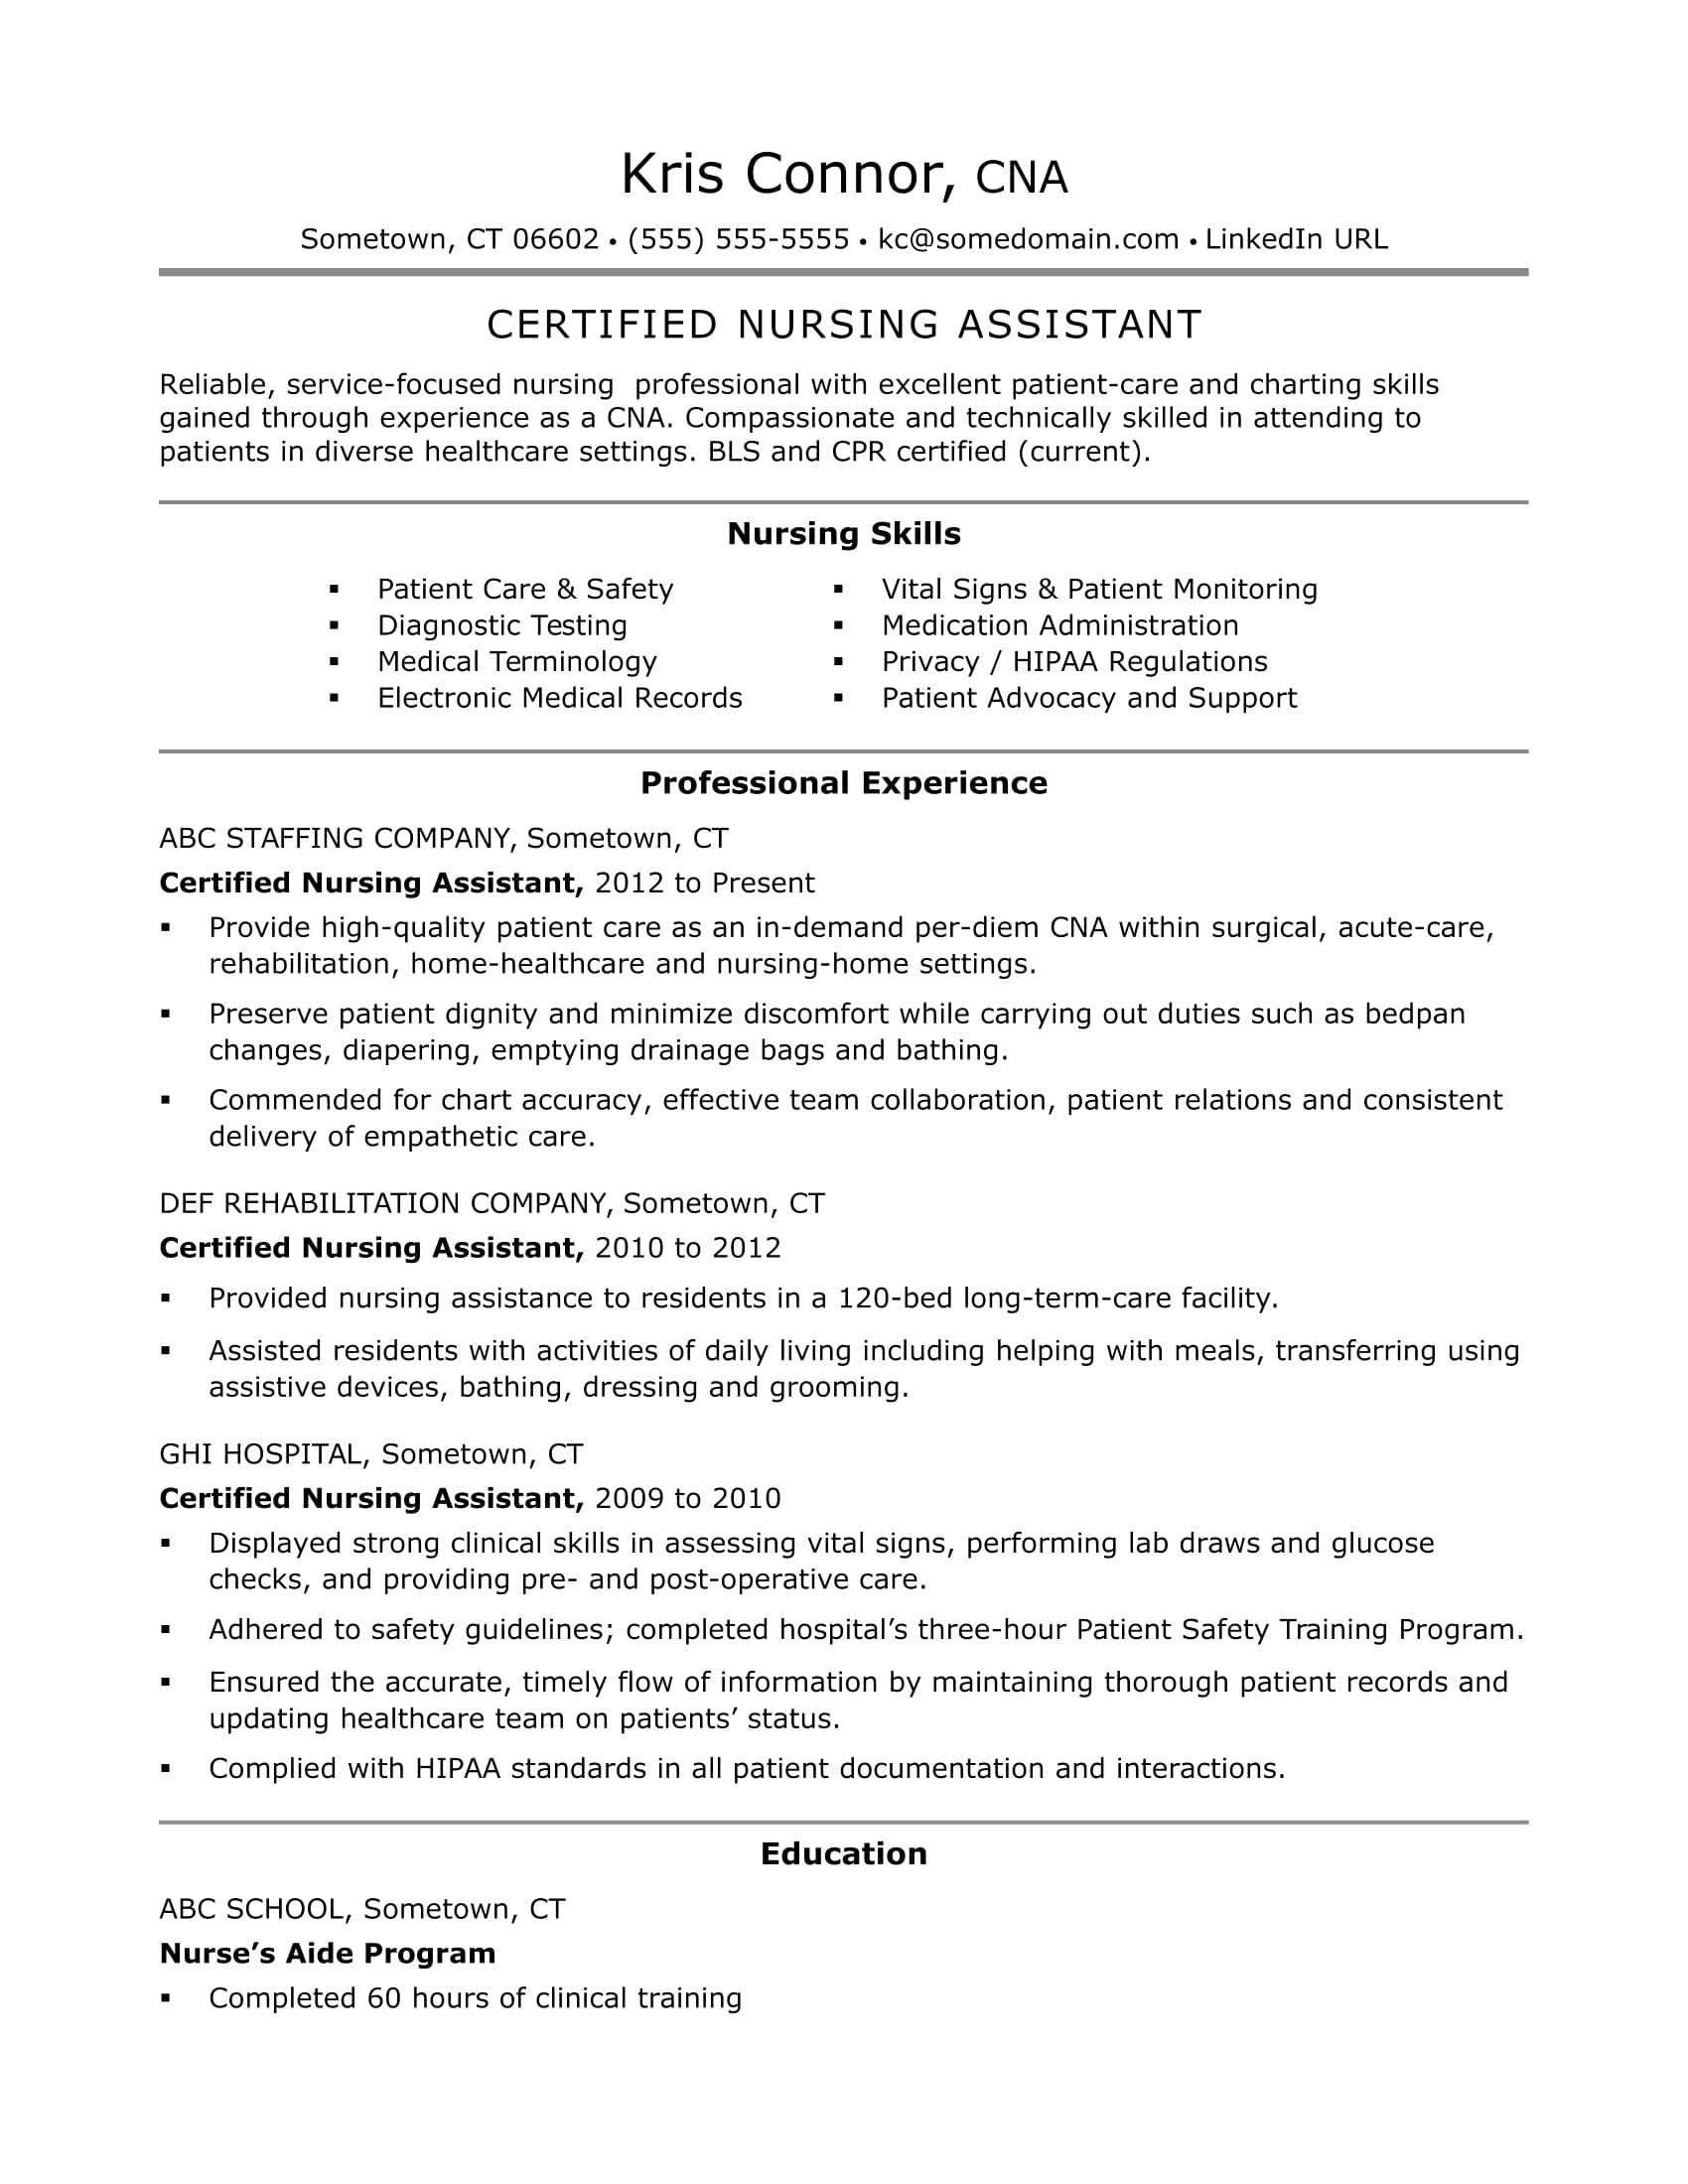 Home Health Aide Skills Resume - 41 Fresh App for Resume